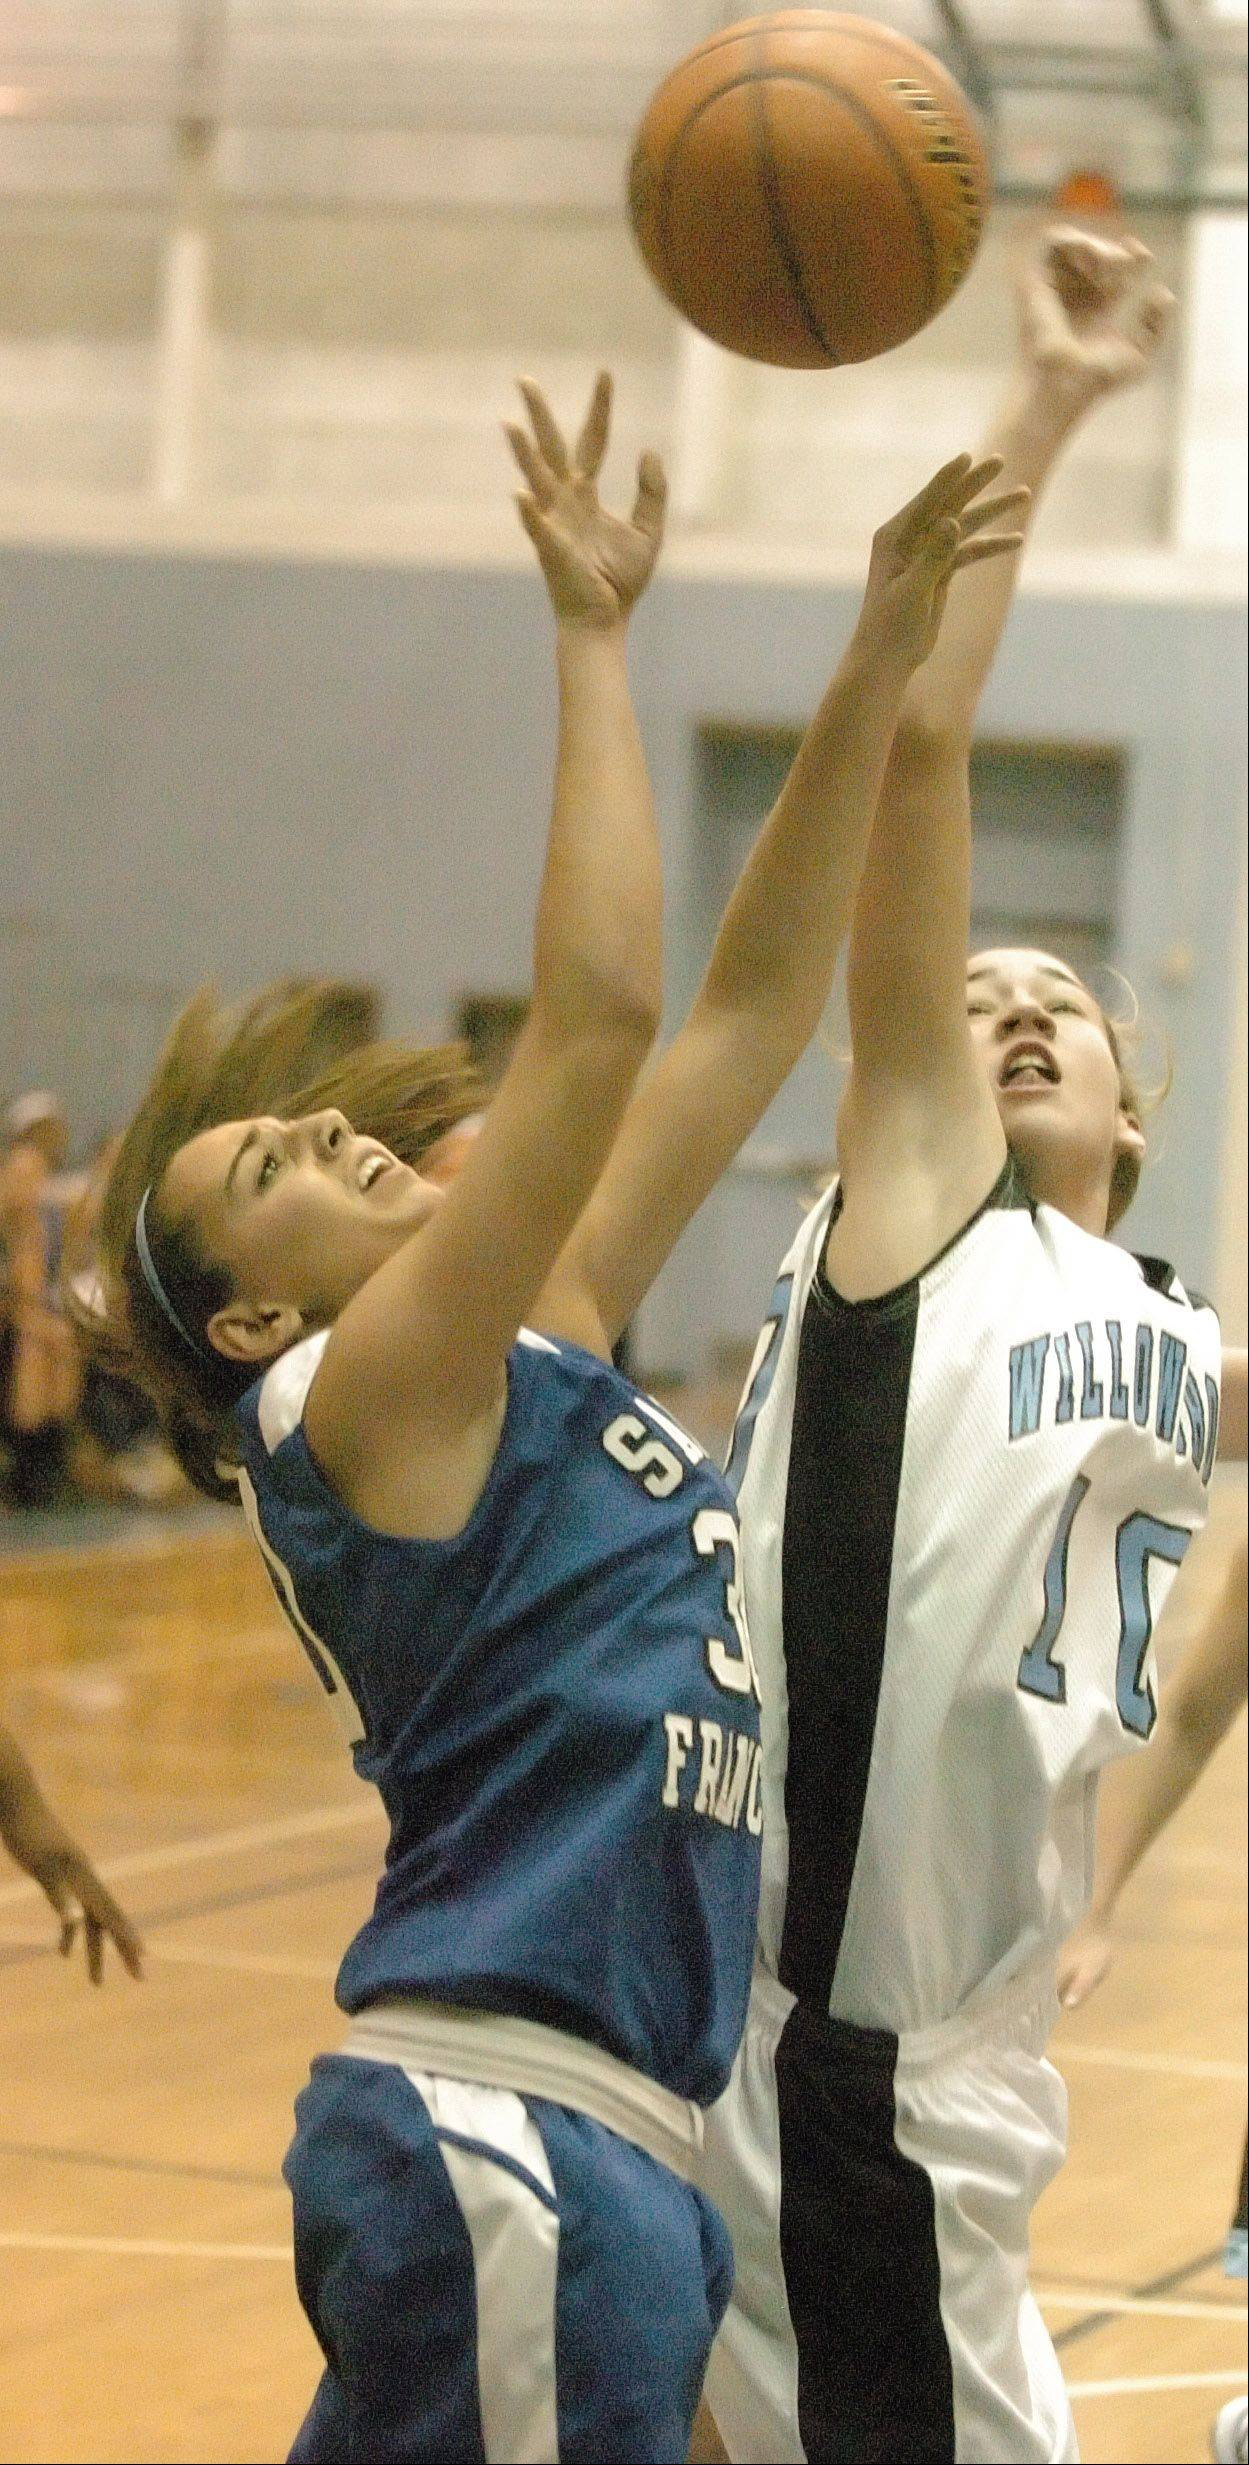 Aly Germanos of St. Francis and Molly Krawczykowski of Willowbrook fight for the ball. This took place during the St. Francis at Willowbrook 19th Annual Willowbrook Lady Warriors Thanksgiving Invite Thursday.